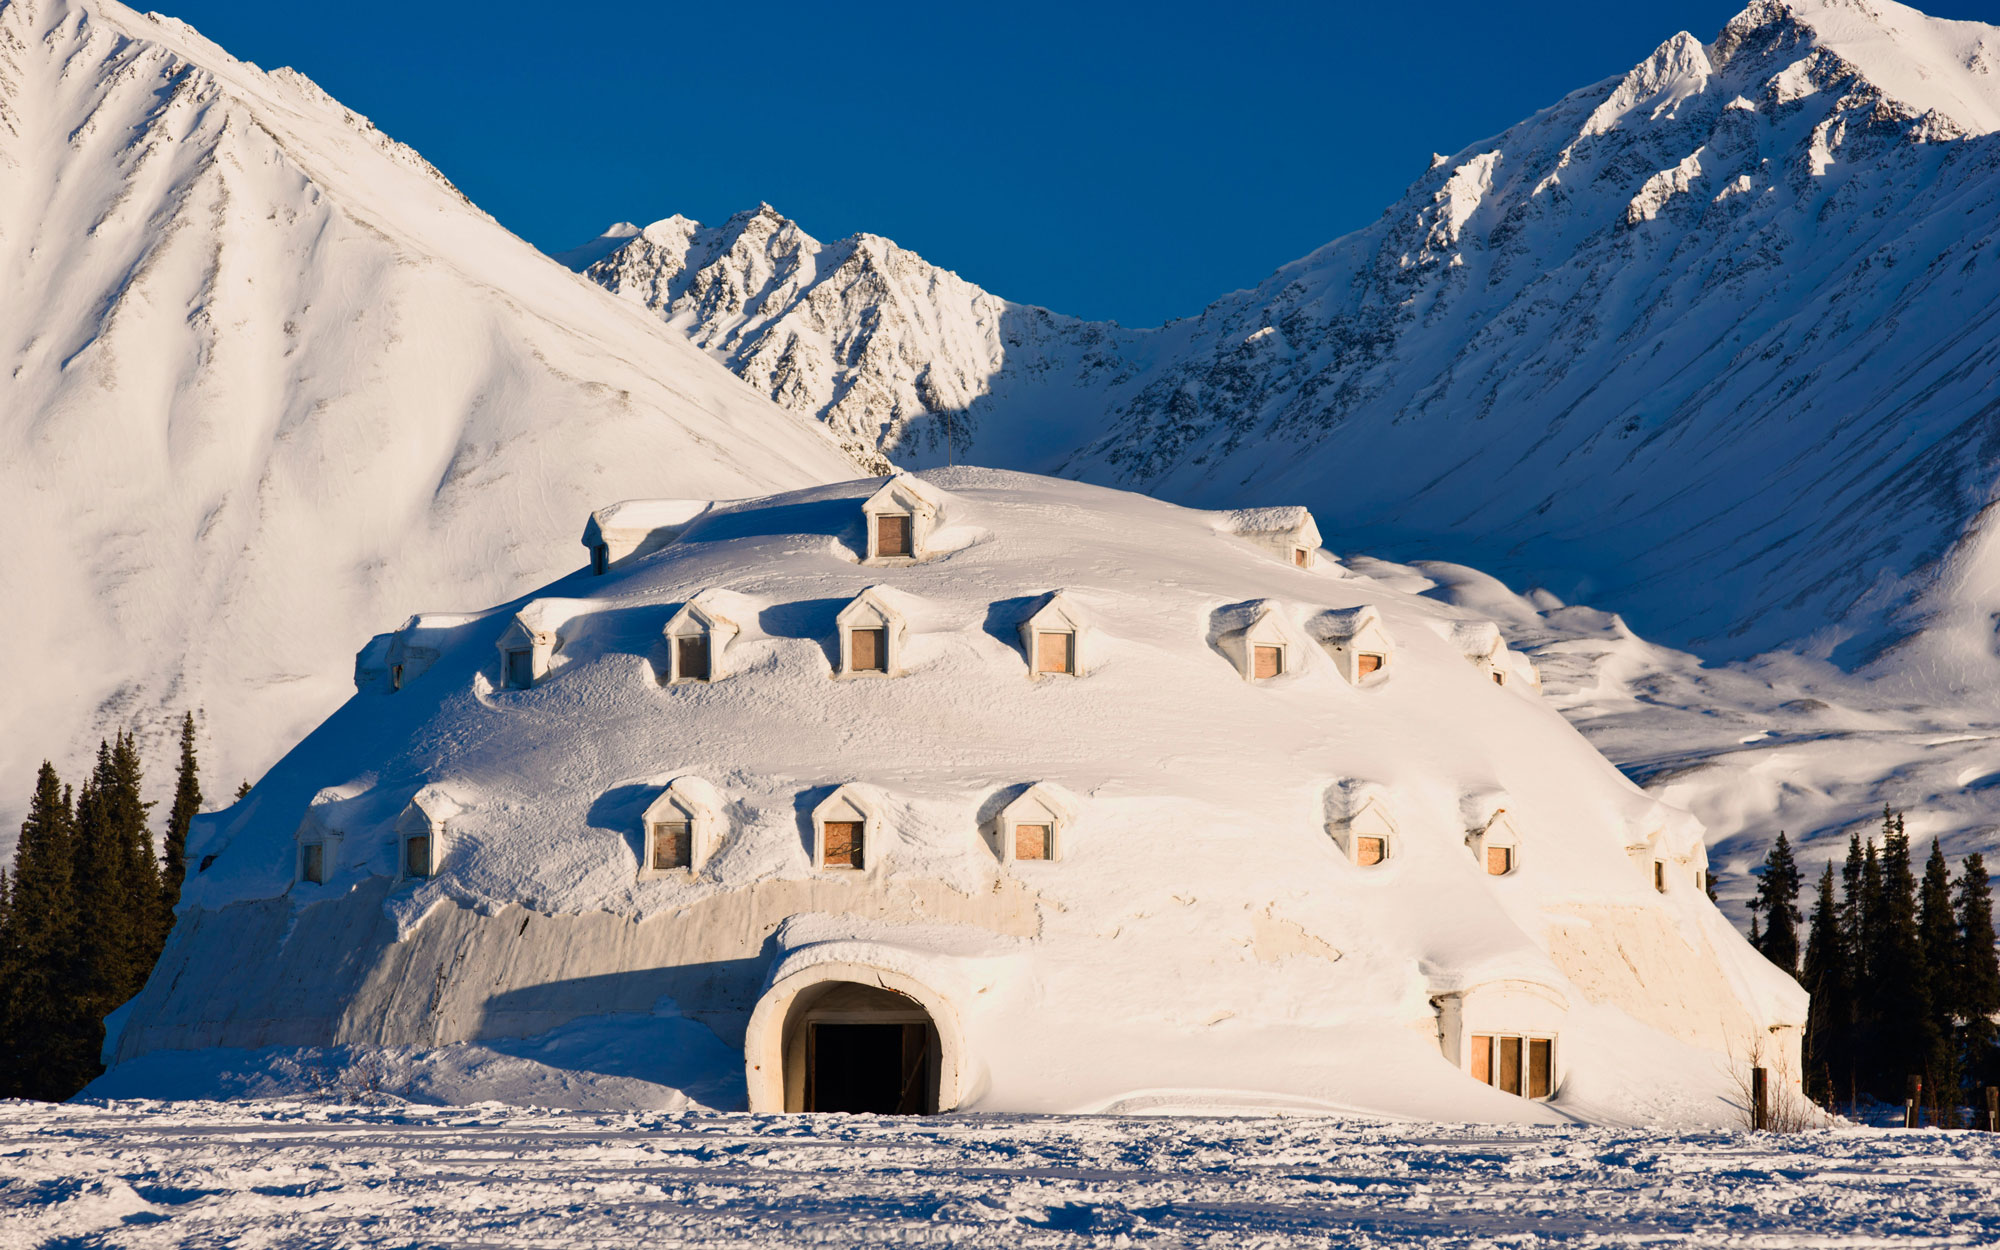 Weirdest Roadside Attractions: Alaska: Igloo City